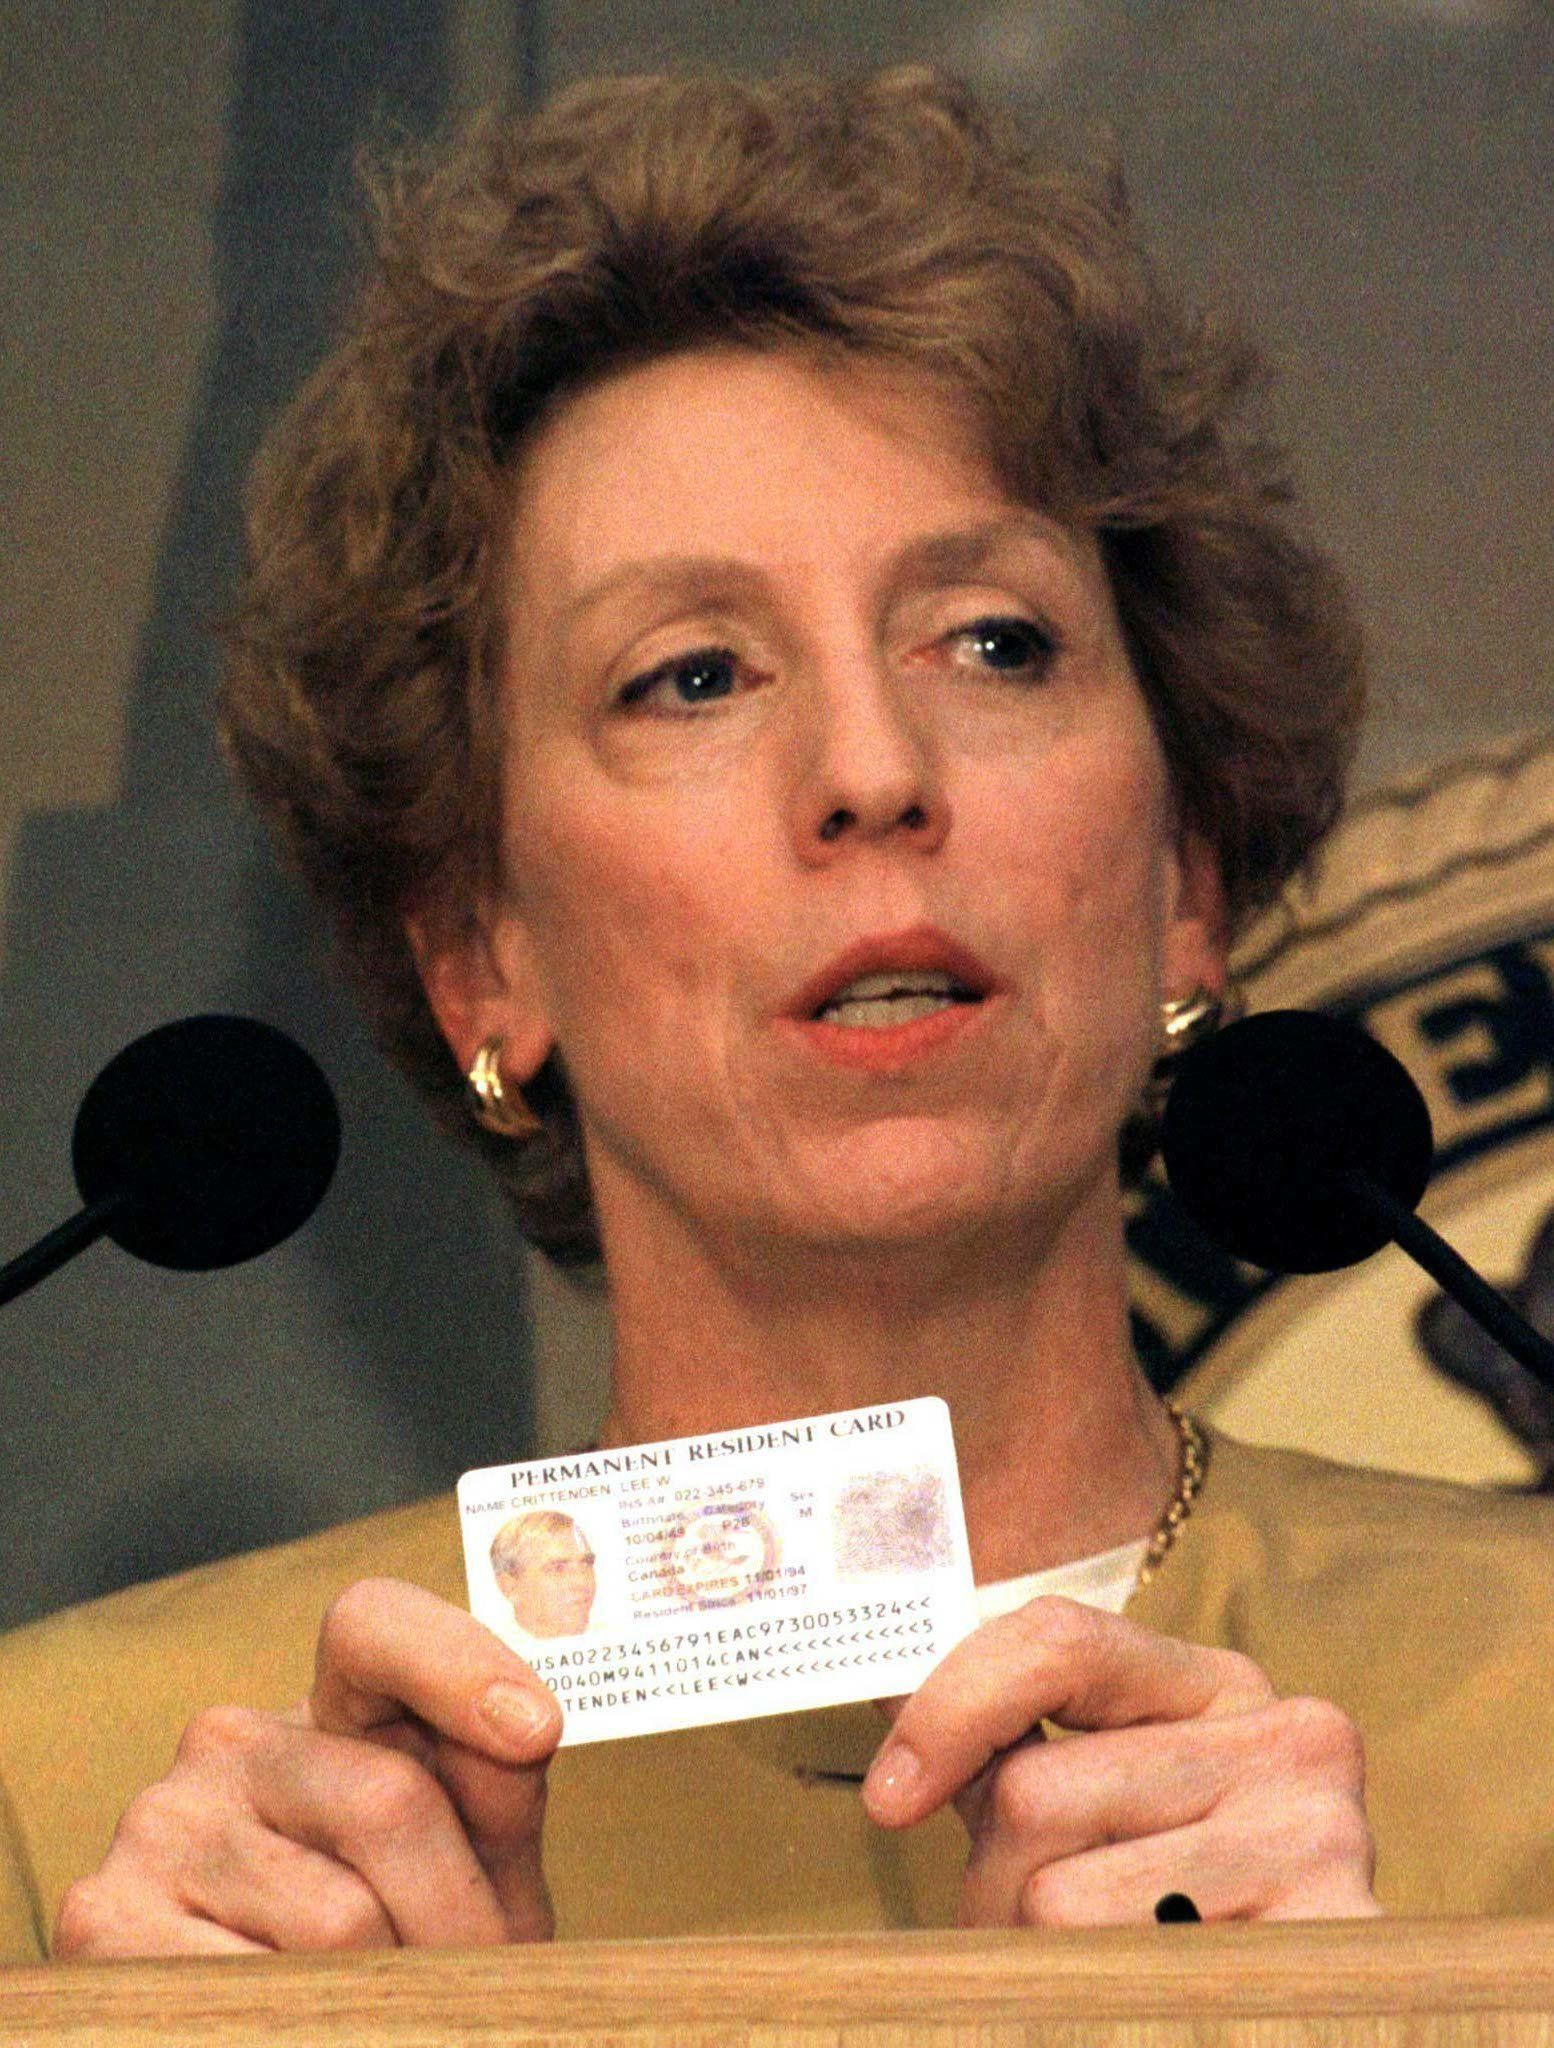 "Immigration and Naturalization Service (INS) Deputy Commissioner Mary Ann Wyrsch announces the issuance of a new ""Green Card"" at a press conference in Washington, April 21. The new Green Cards are being issued to prevent fraud and to allow employers to comply with immigration law. The cards are issued to lawful permanent residents as proof of their authorization to live and work in the U.S.  REUTERS"